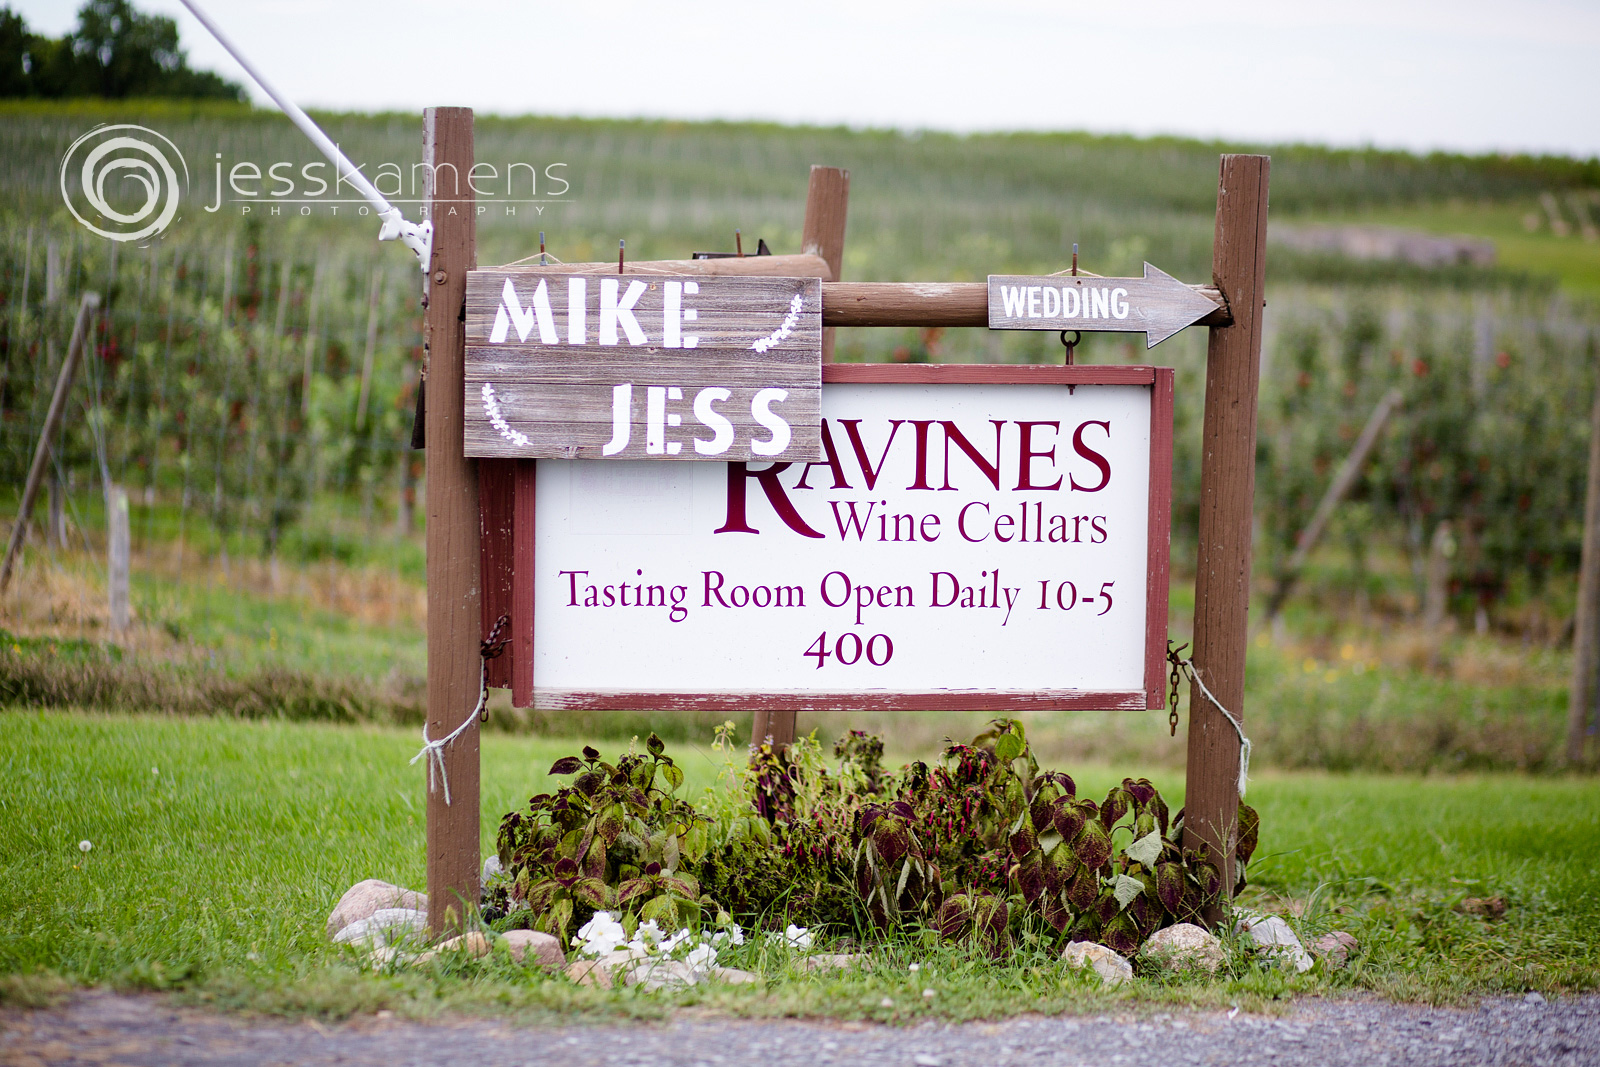 Ravines wine cellars outside of Rochester, NY